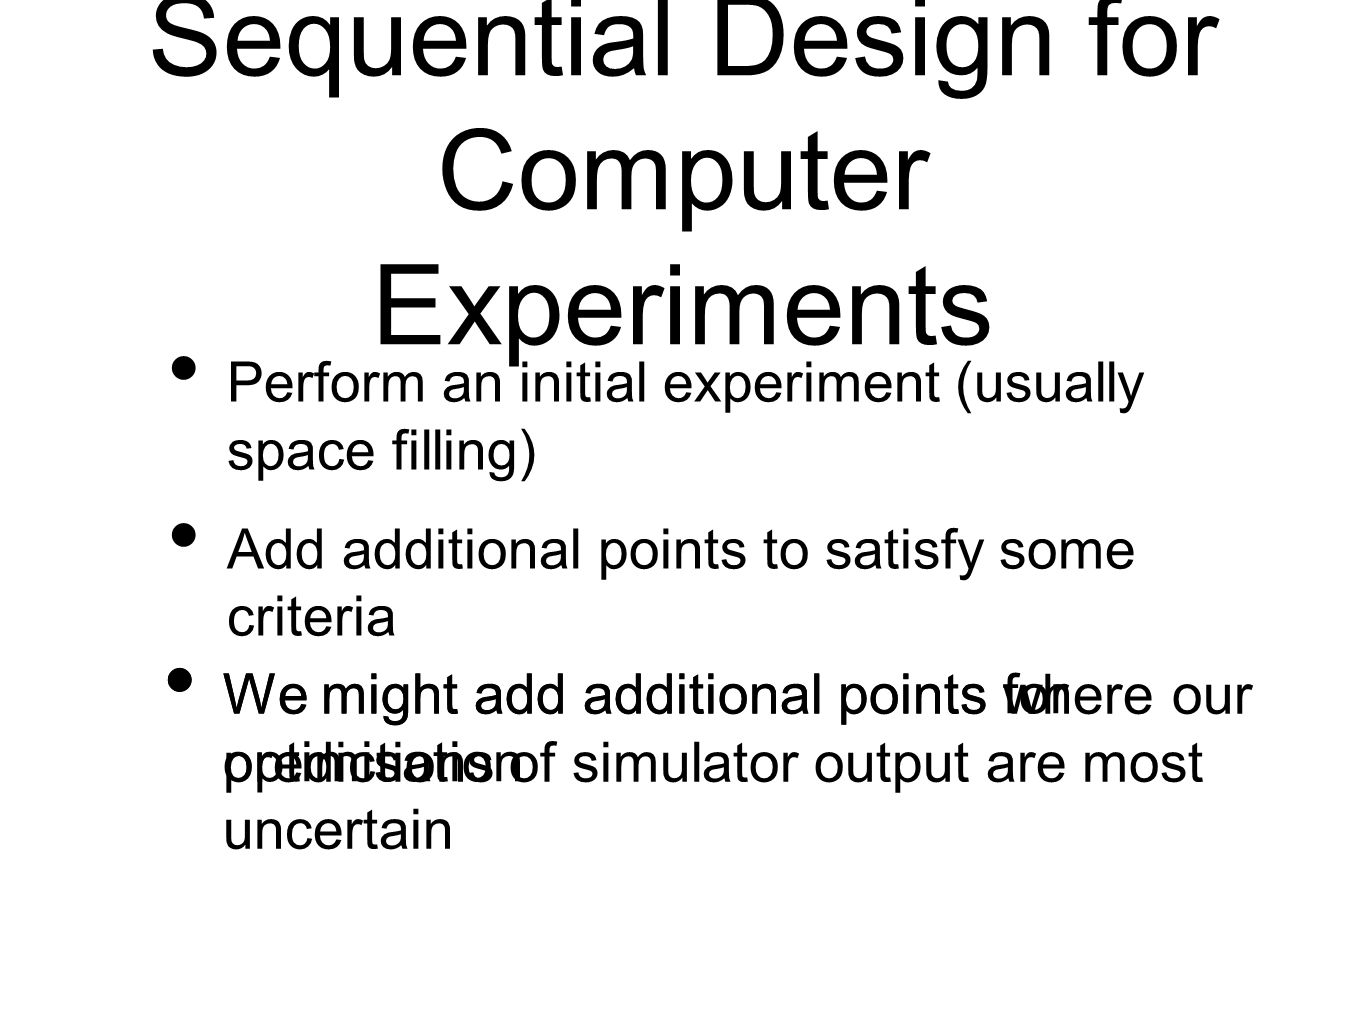 Sequential Design for Computer Experiments